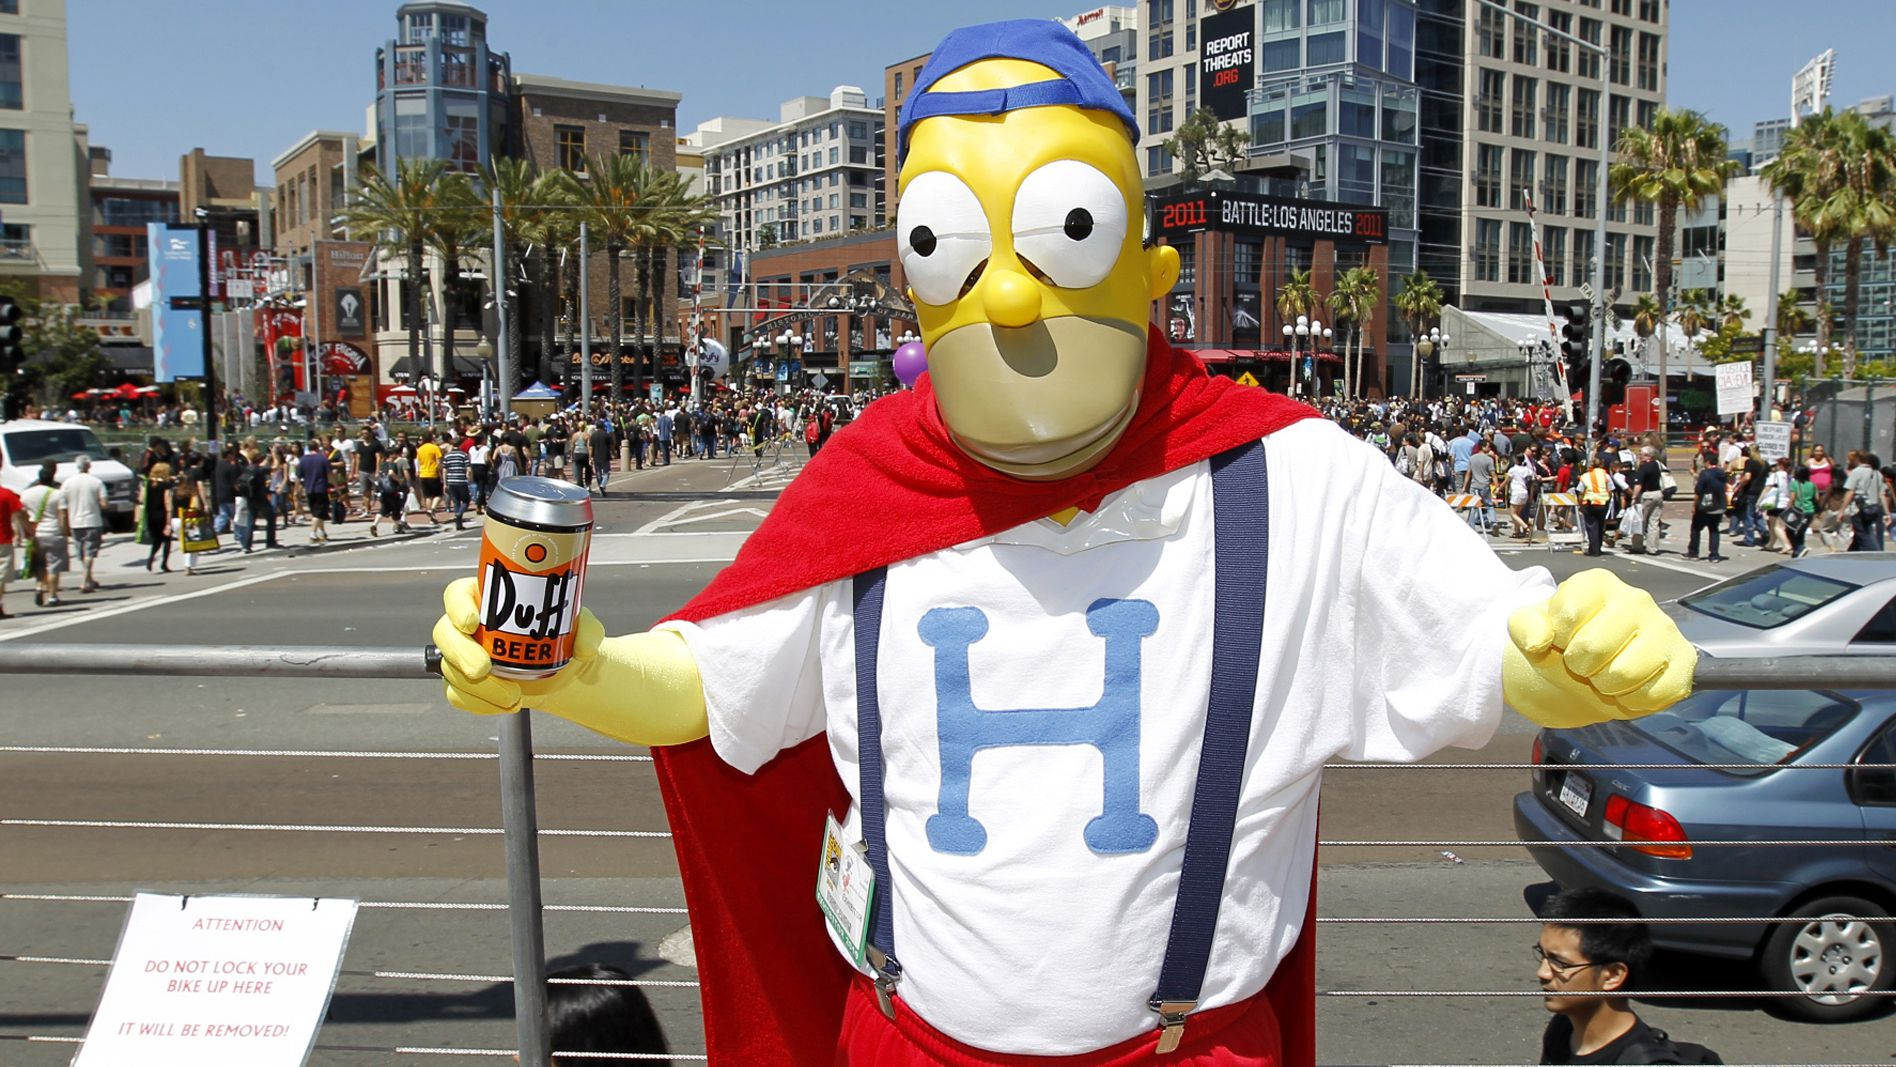 """china property housing home sales An attendee arrives dressed as Homer Simpson, from the television show """"The Simpsons"""" during the third day of the pop culture convention Comic Con in San Diego, California July 24, 2010. REUTERS/Mike Blak"""